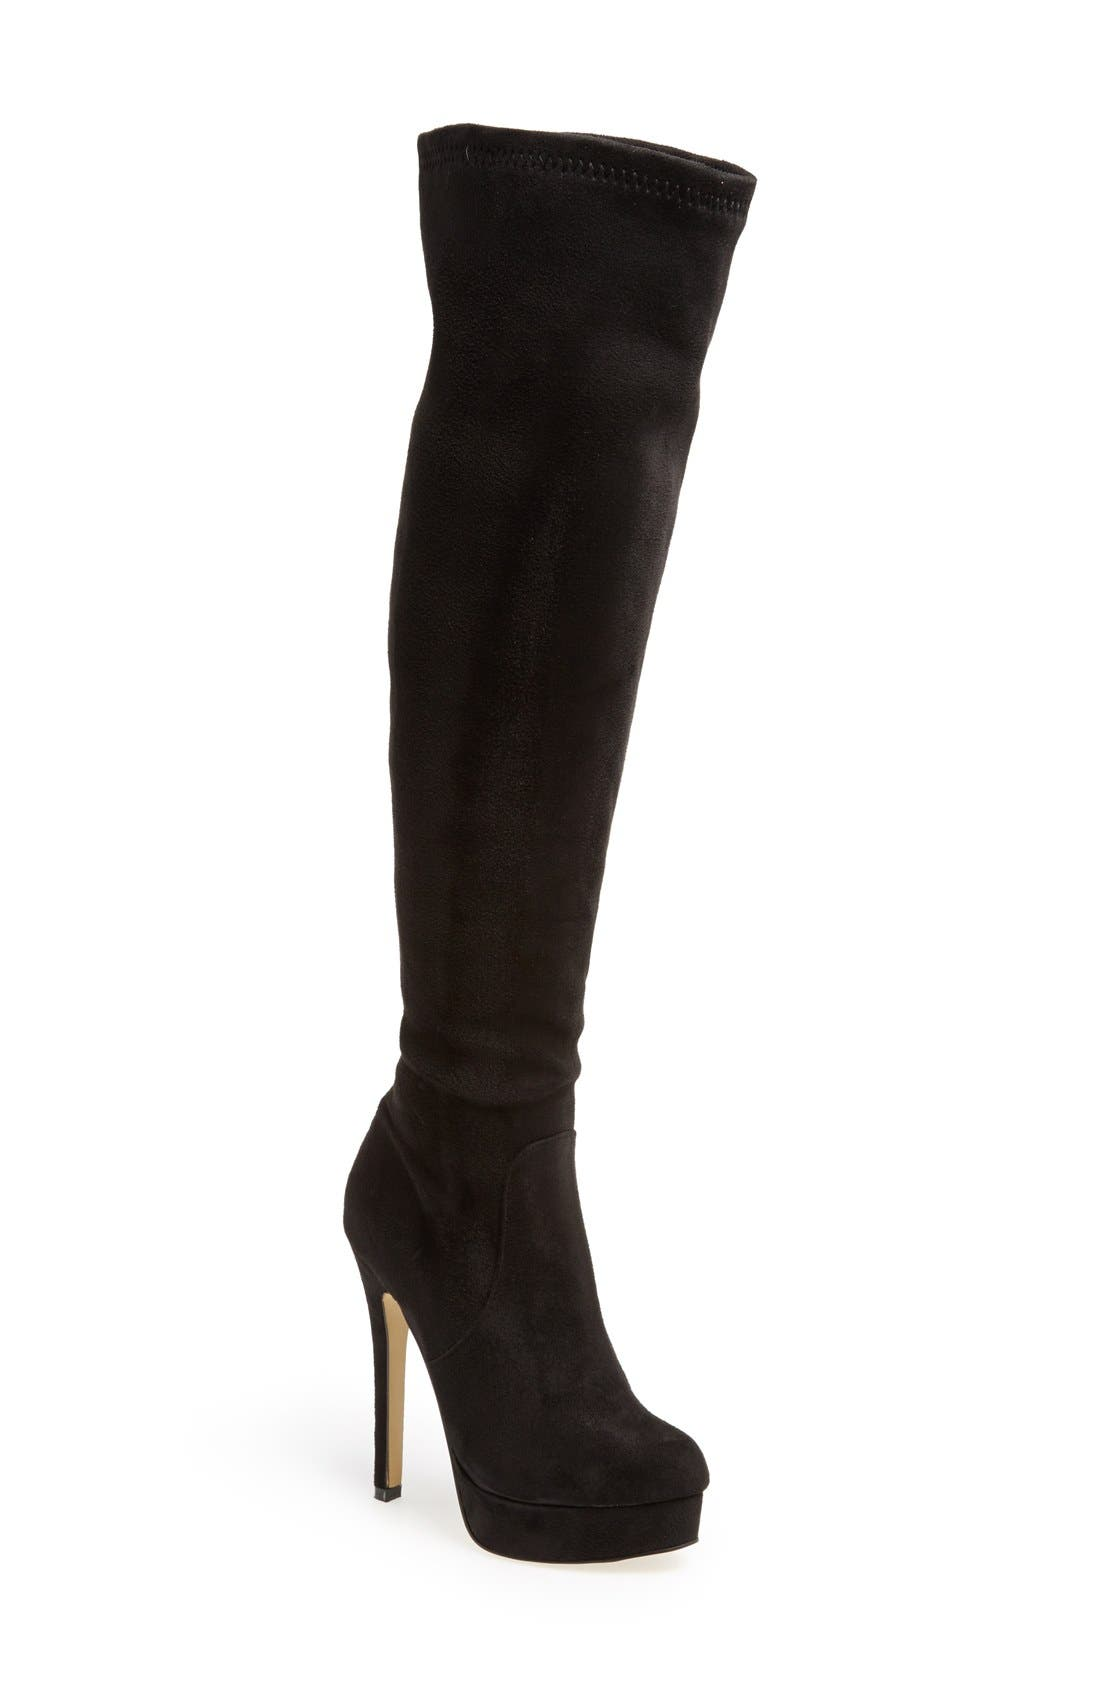 Main Image - Chinese Laundry 'Luster' Over the Knee Platform Boot (Women)